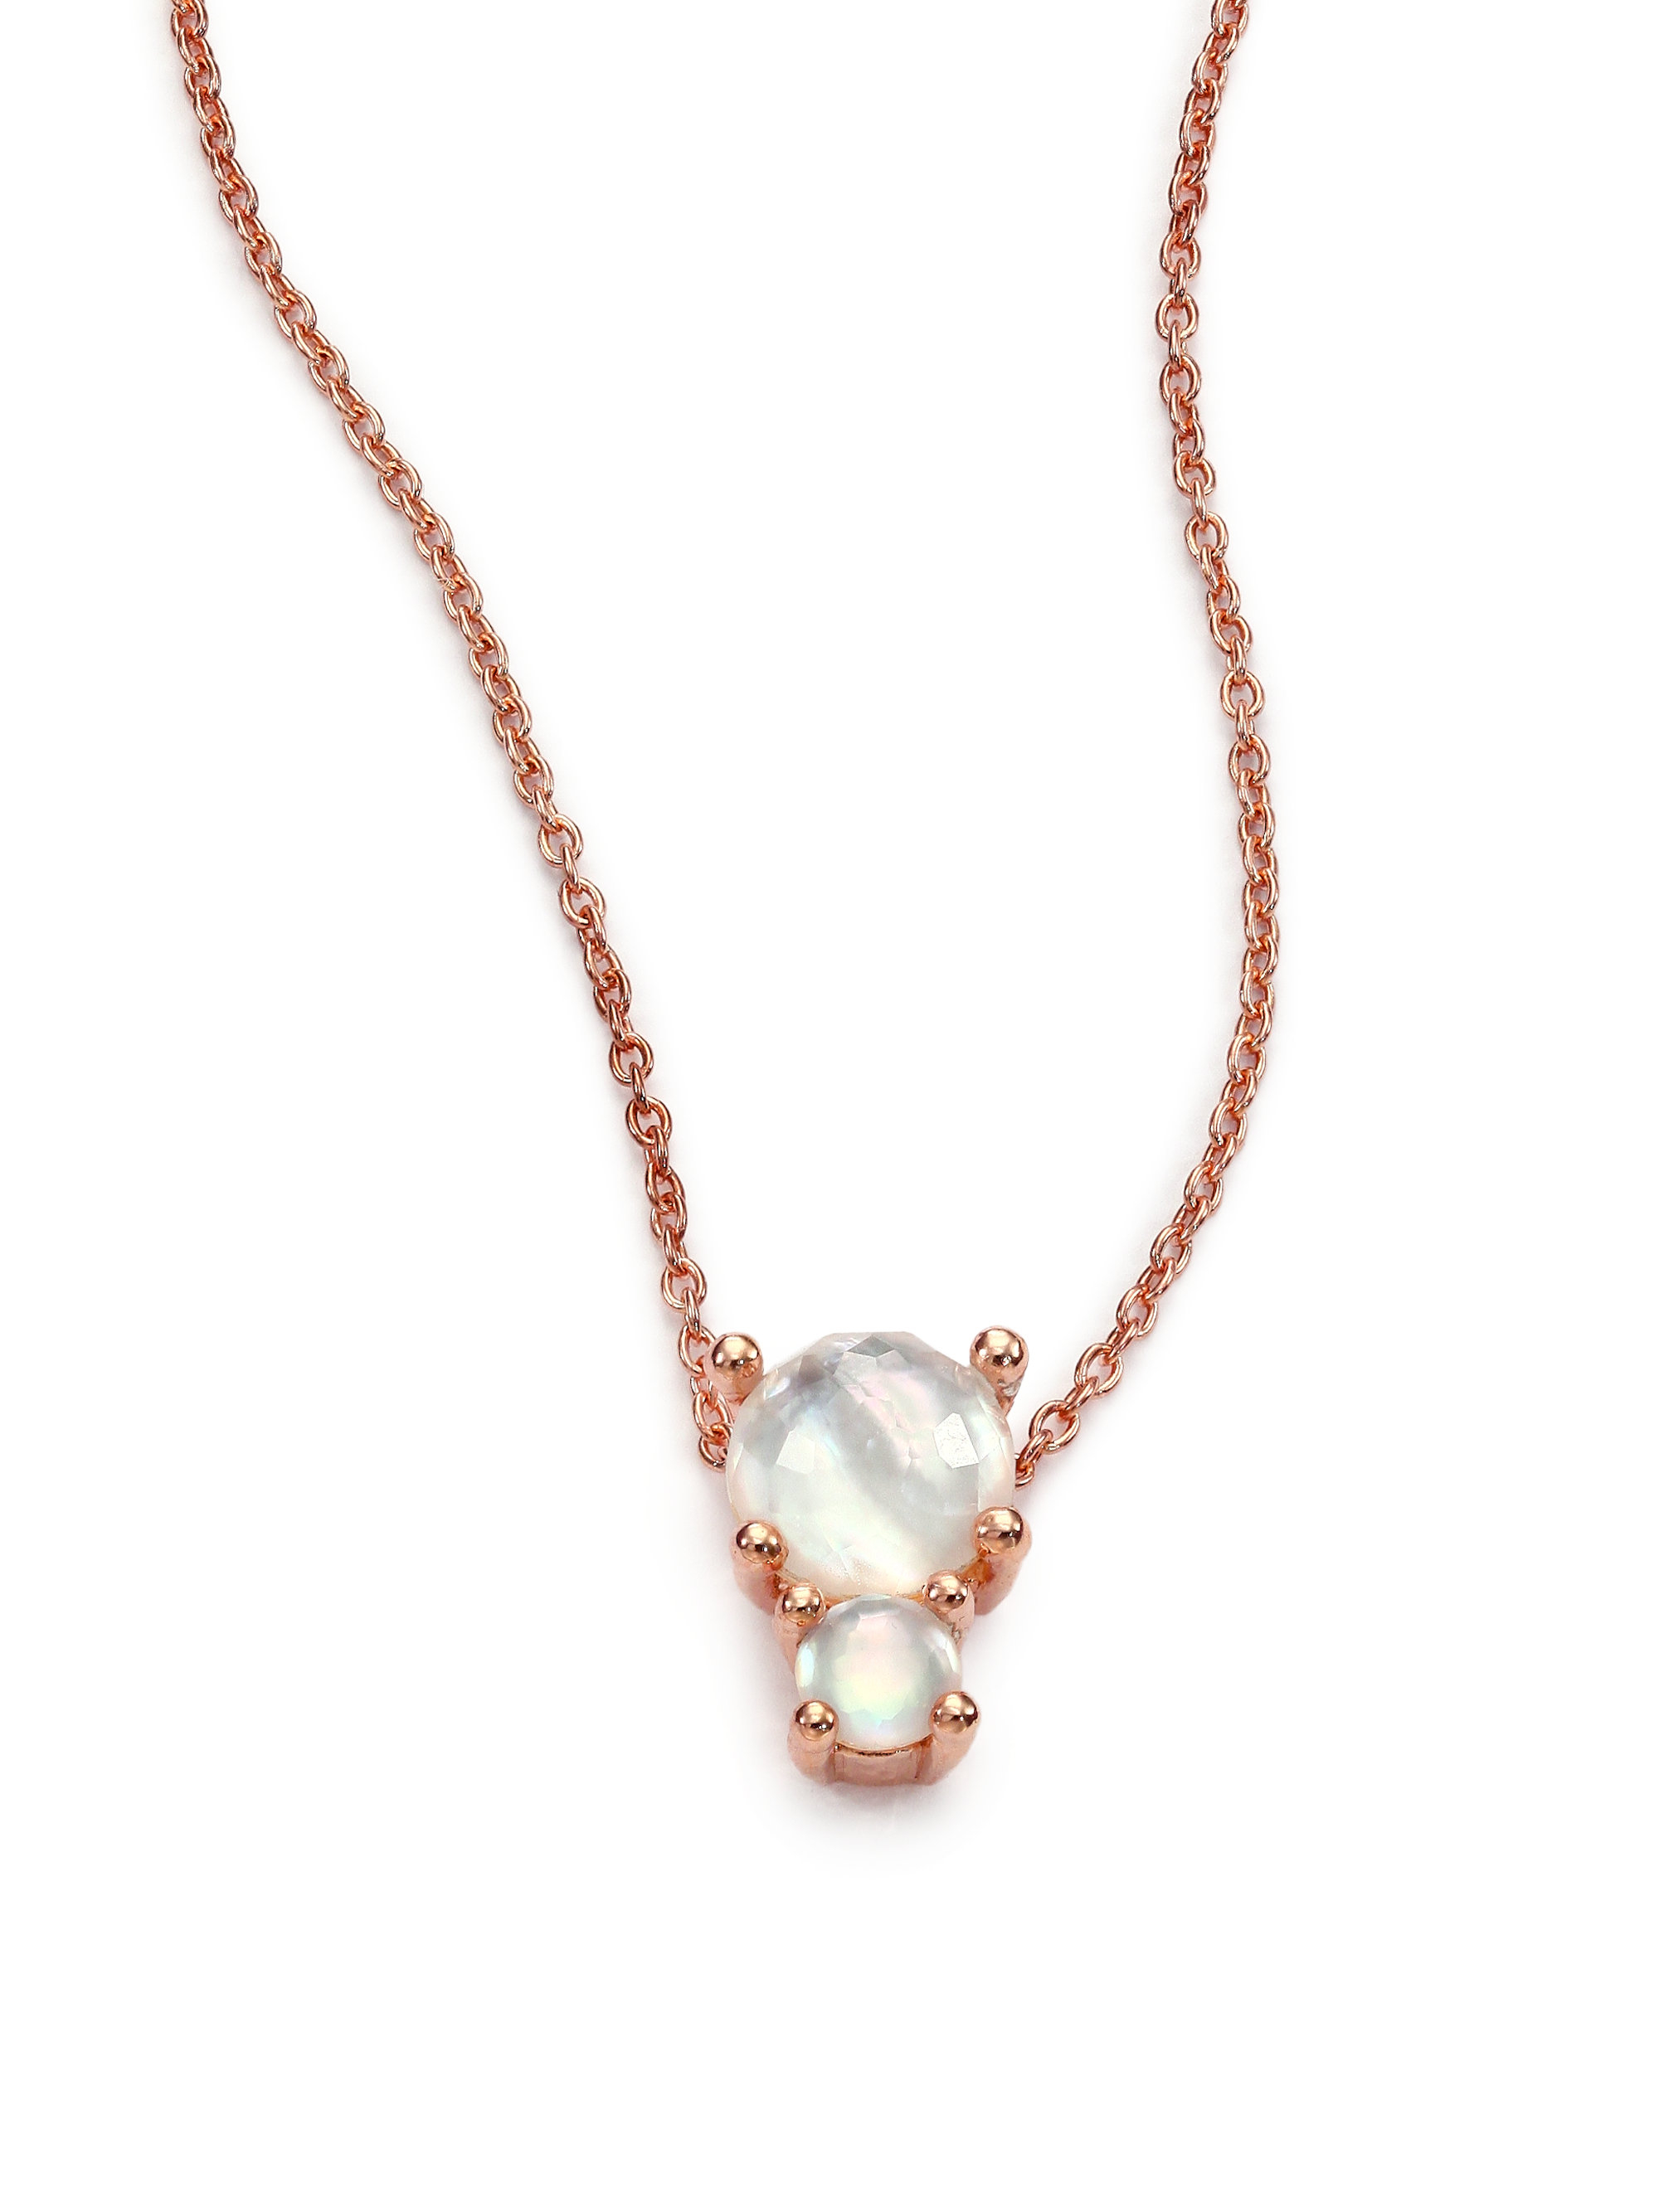 cry necklace clear quartz fabuleux vous collections fv c crystal jewellery collection